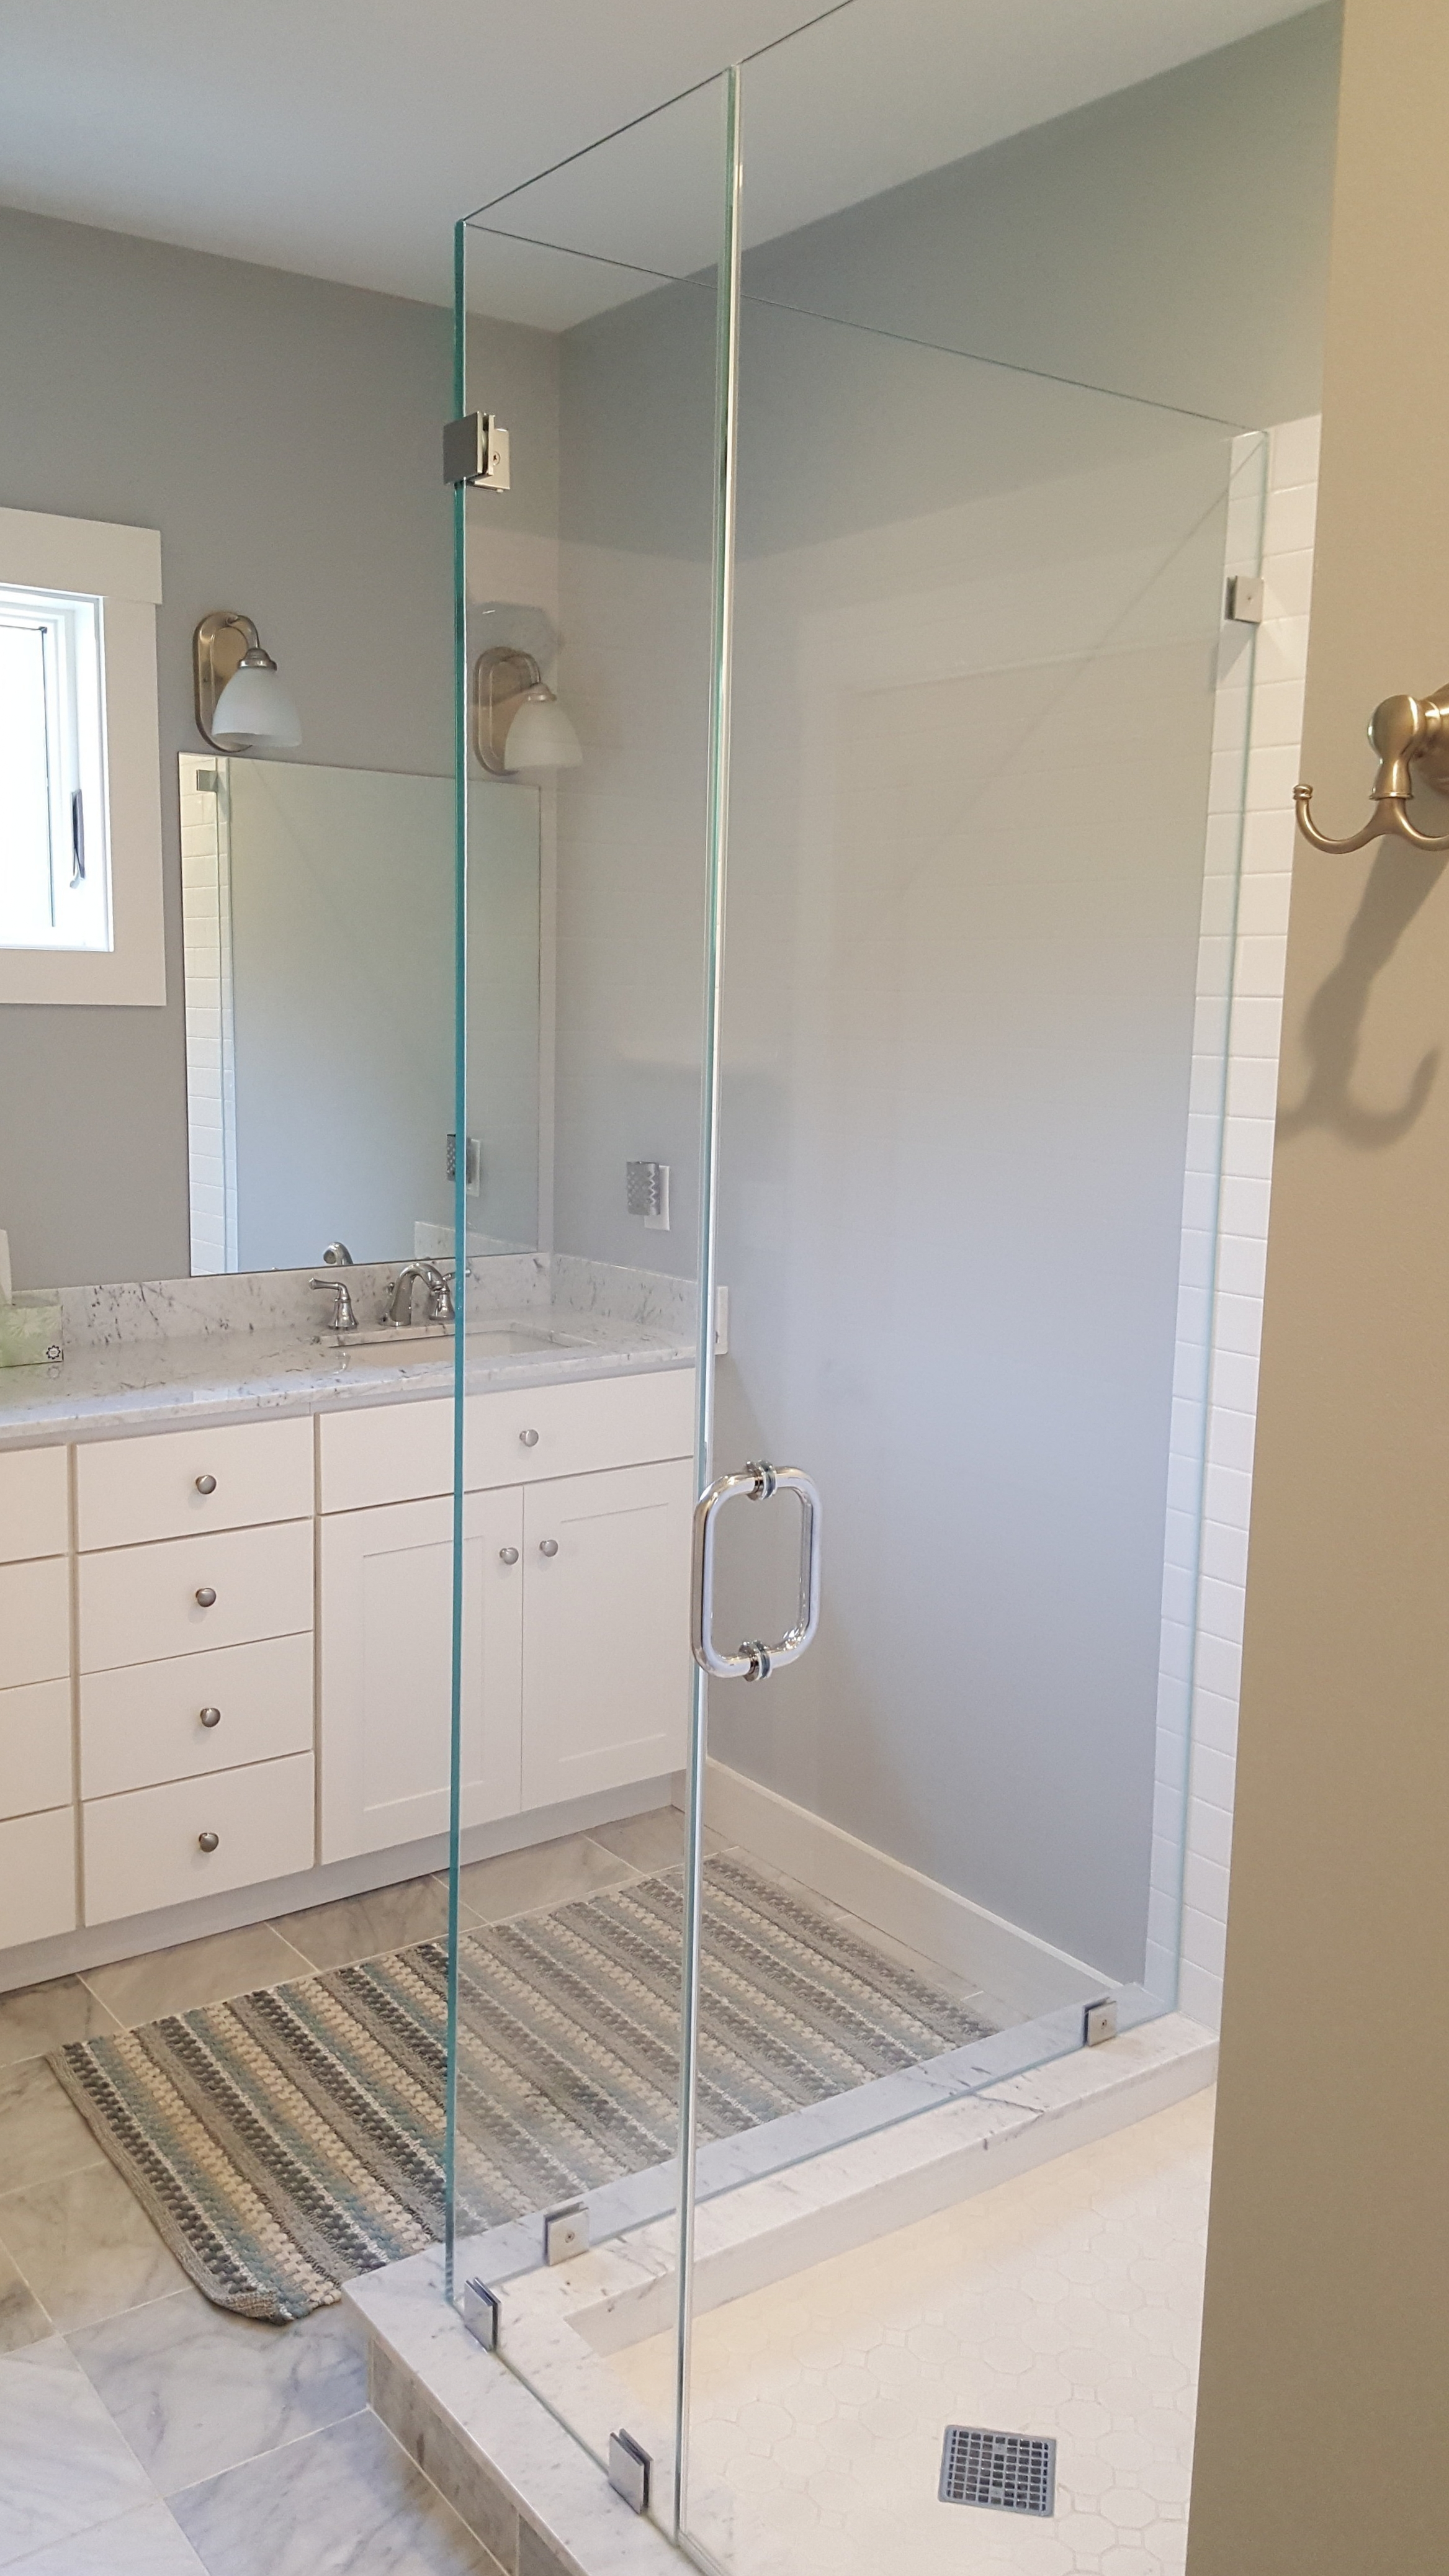 Residential Glass - Are you looking to add beauty and elegance to your home? Dukes County Glass & Mirror is your answer for all your residential glass needs throughout the Martha's VineyardsLearn more ➝